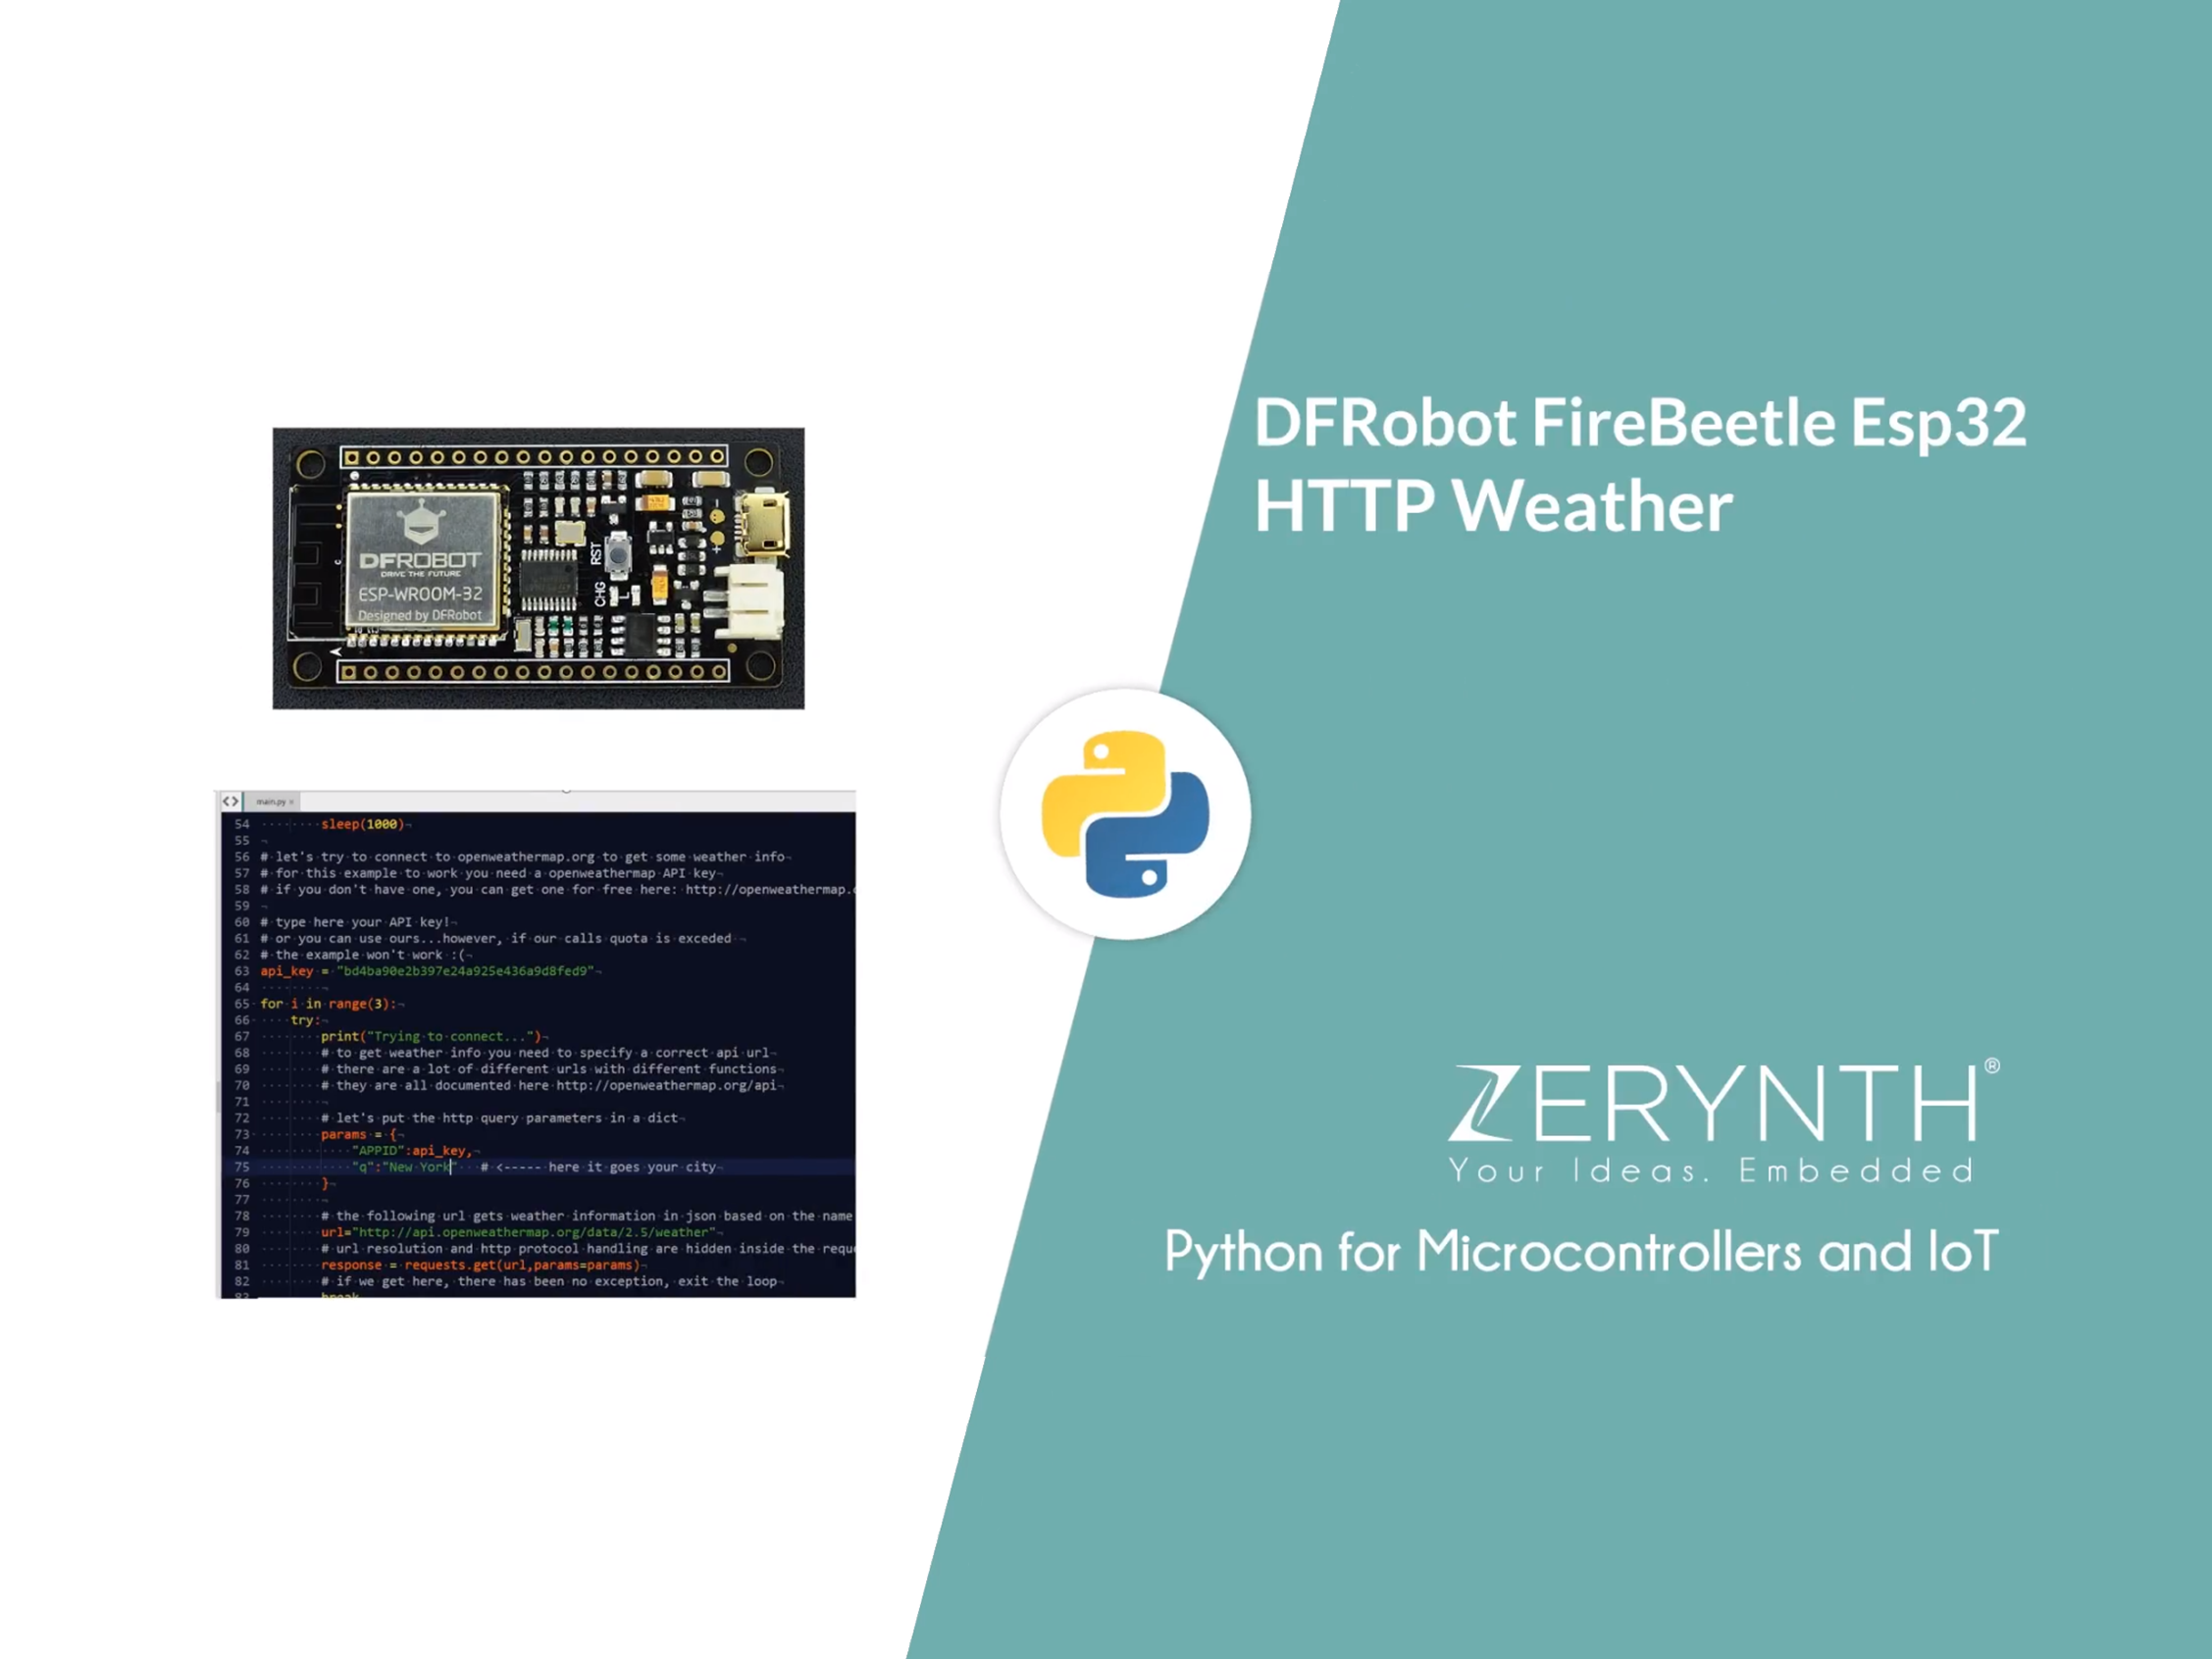 Make an HTTP request to get weather info with Zerynth